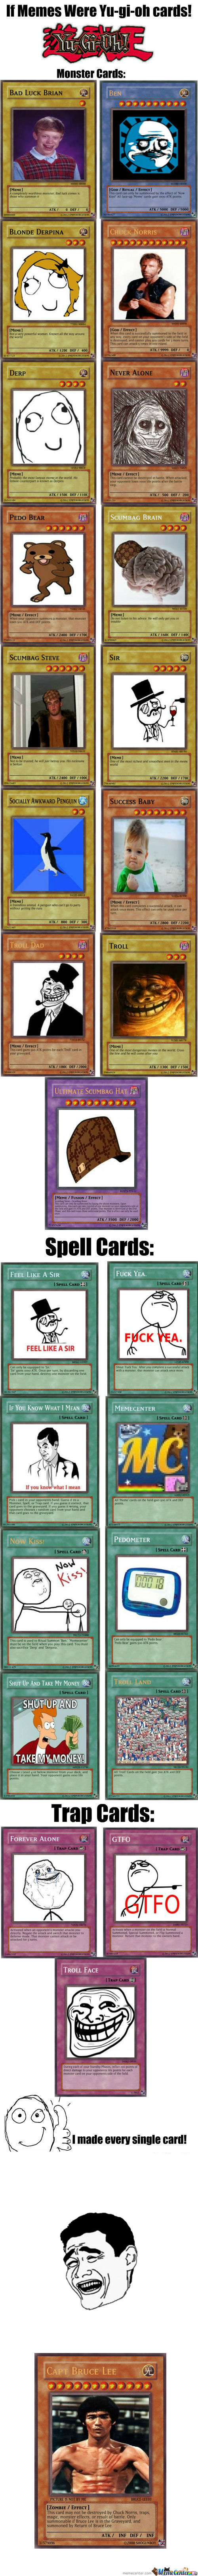 [RMX] Please Read Every Card To Get The Full Effect!